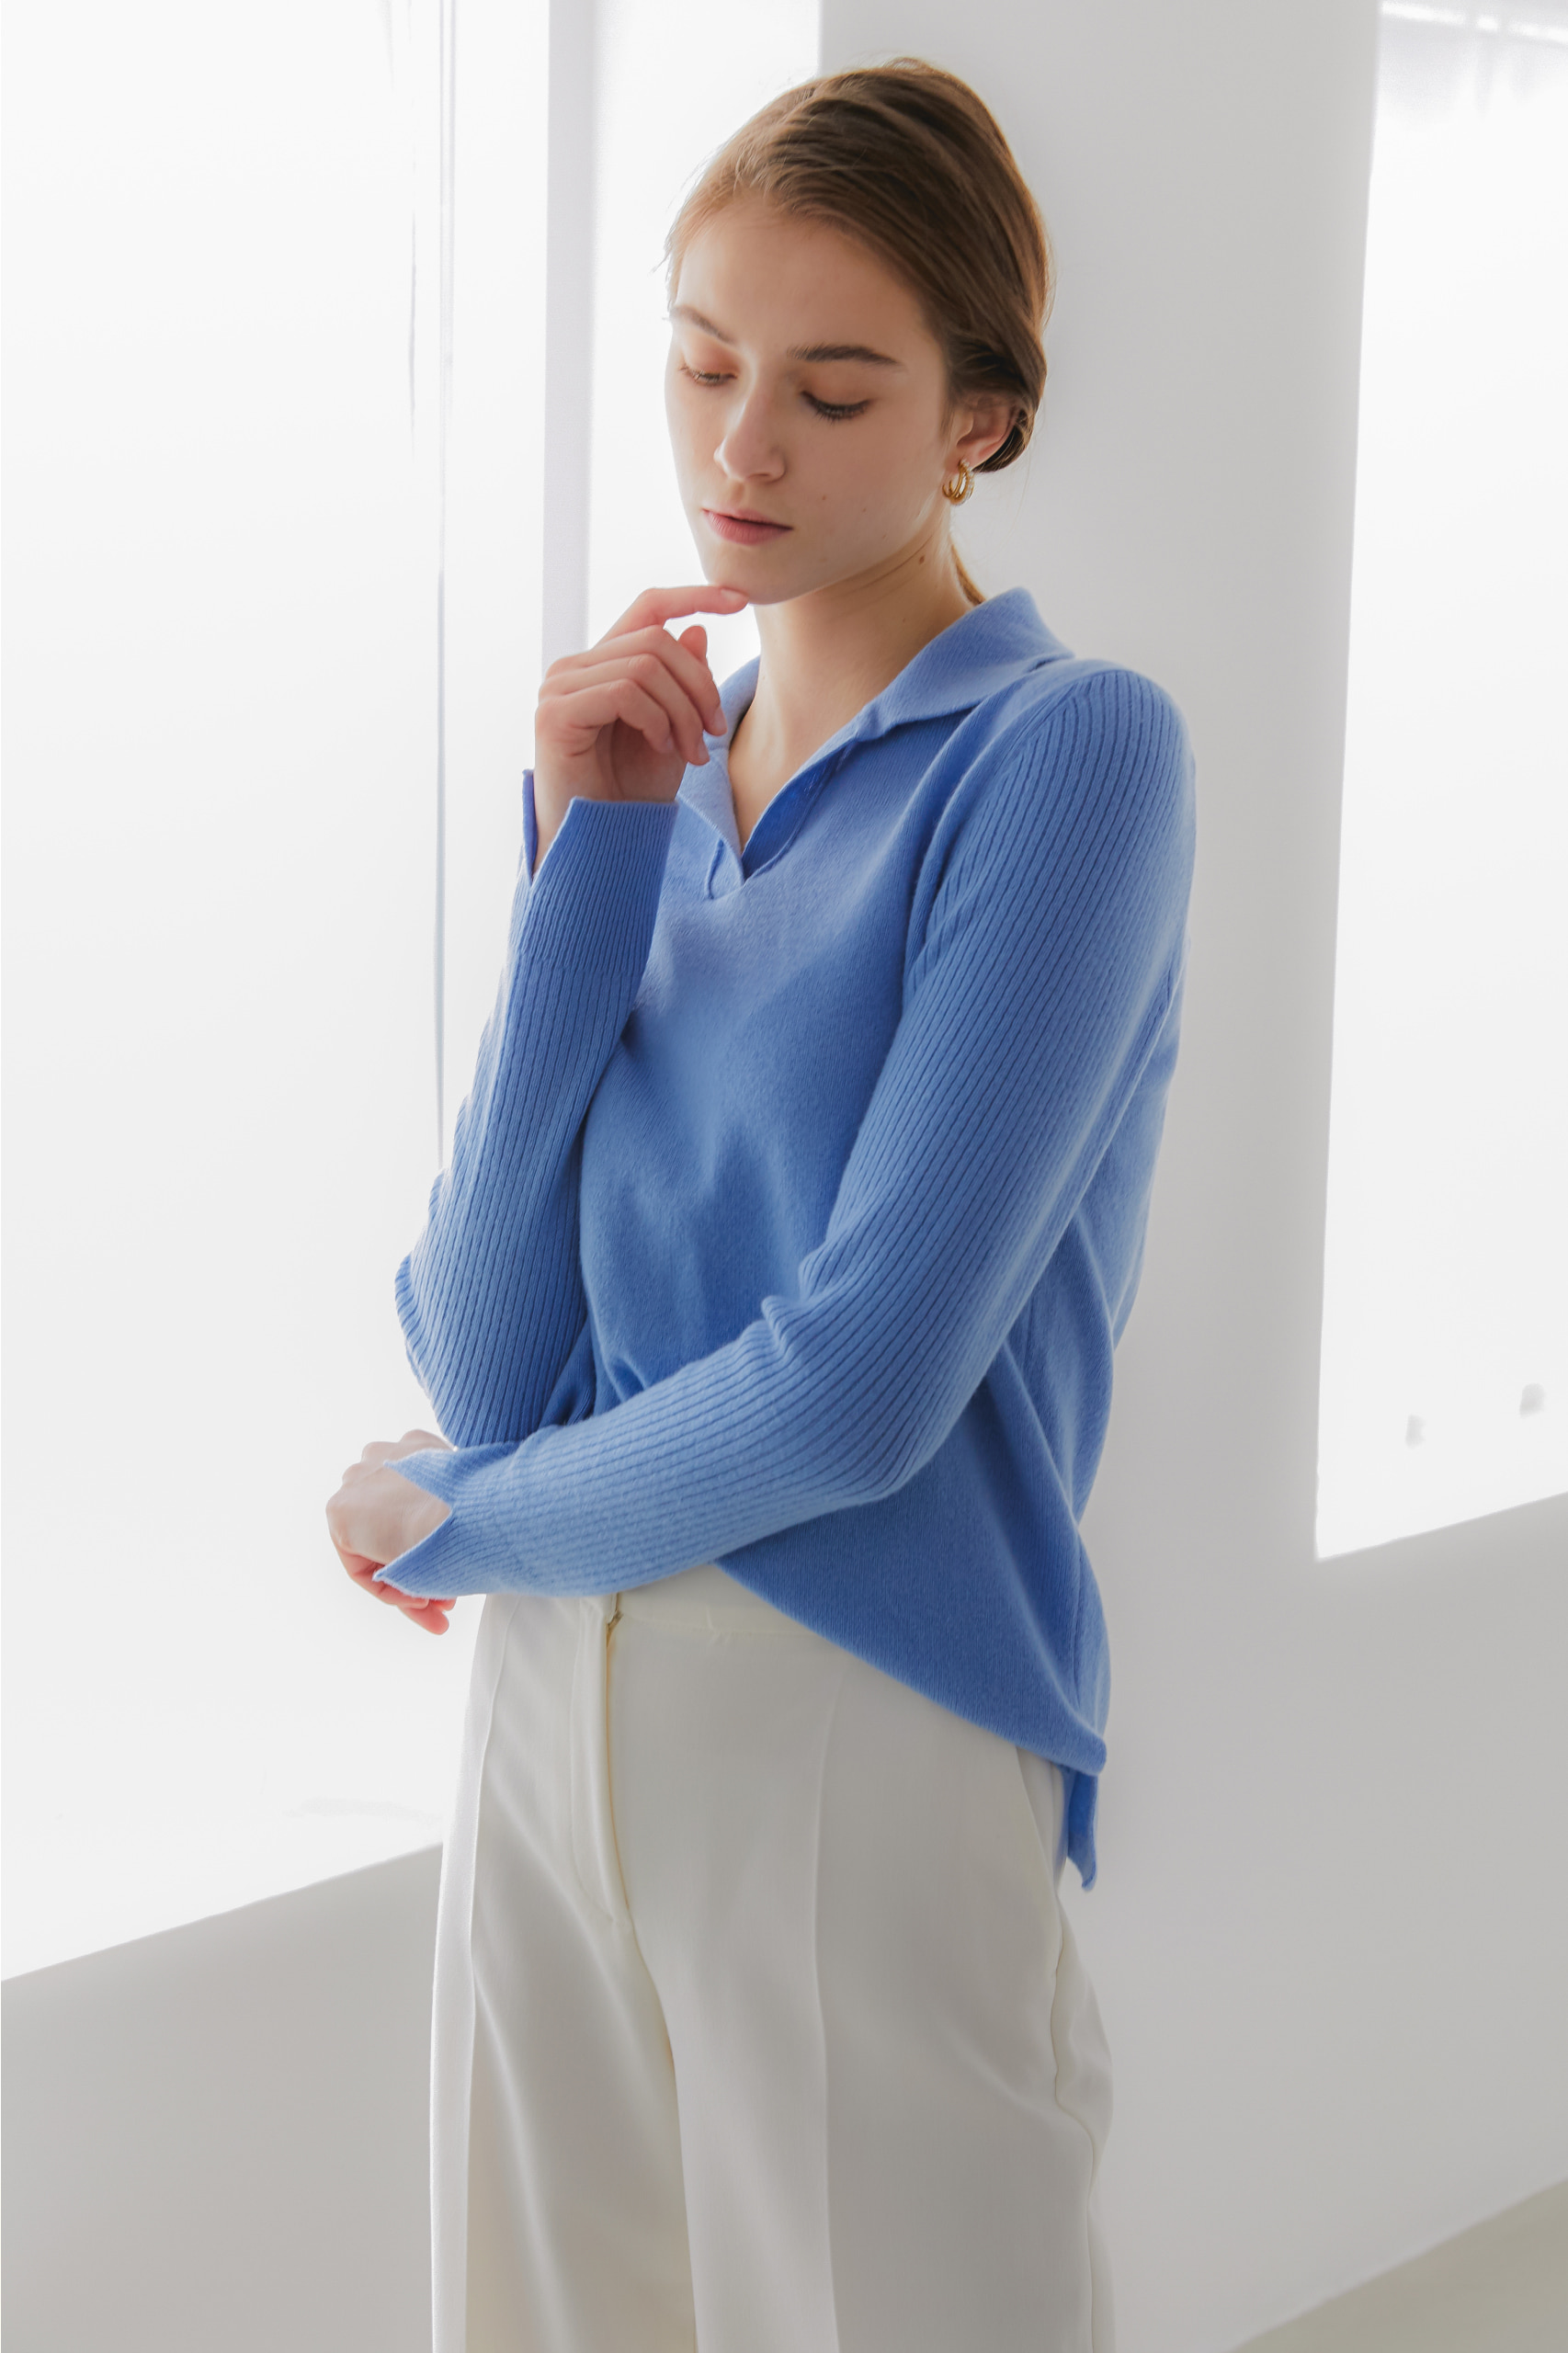 프리미엄 퓨어 캐시미어100 카라 풀오버 Premium pure cashmere100 ribbed soft-touch collar pullover - Paradise blue